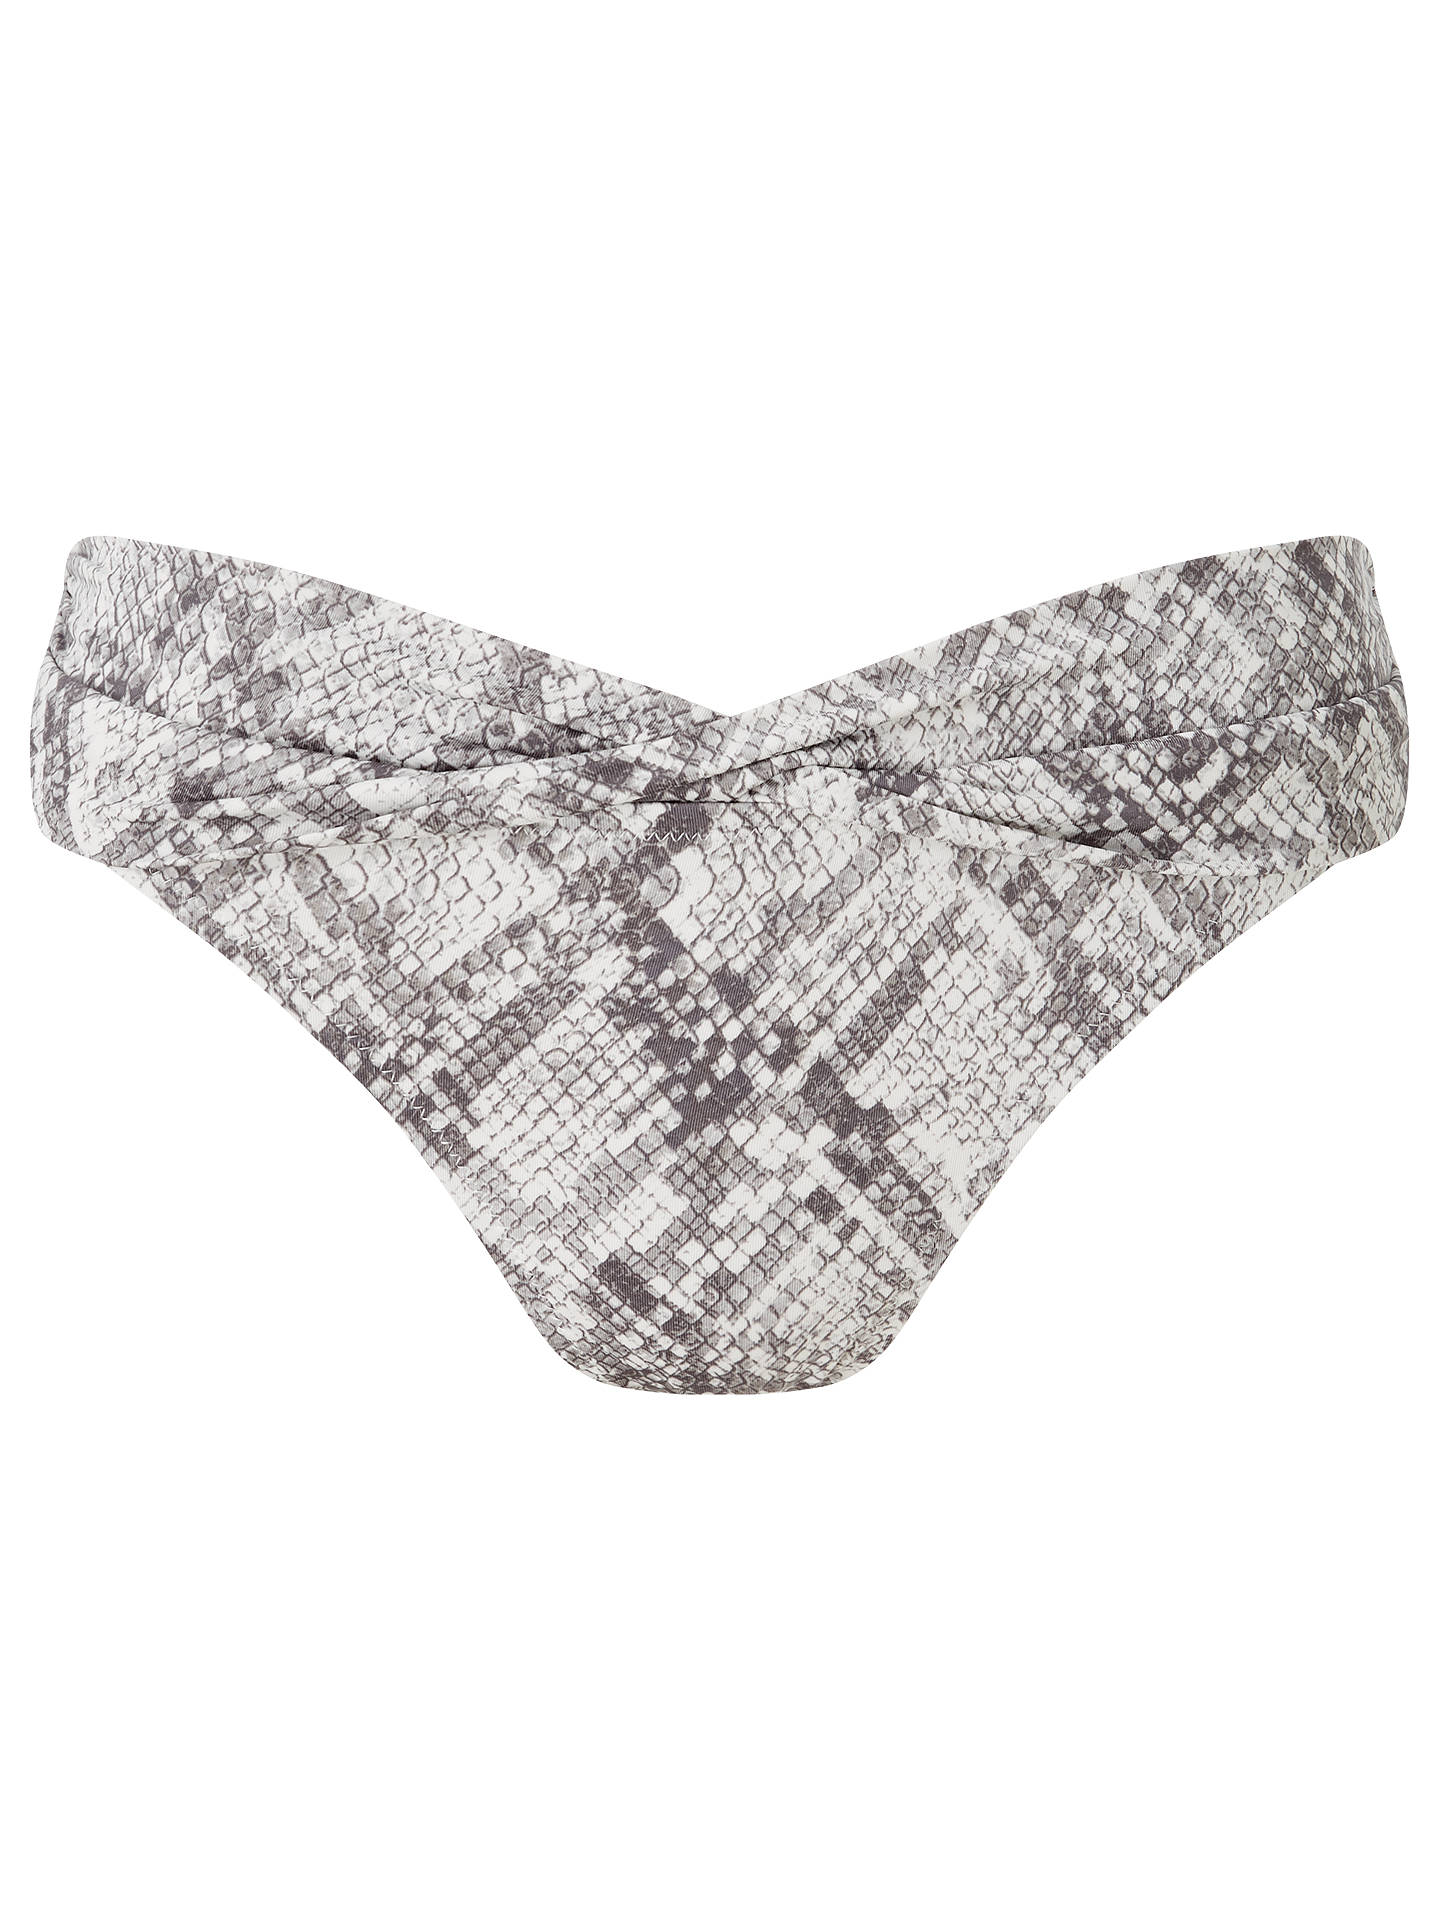 BuyJohn Lewis Mojave Snake Print Twist Front Bikini Briefs, Neutral, 8 Online at johnlewis.com